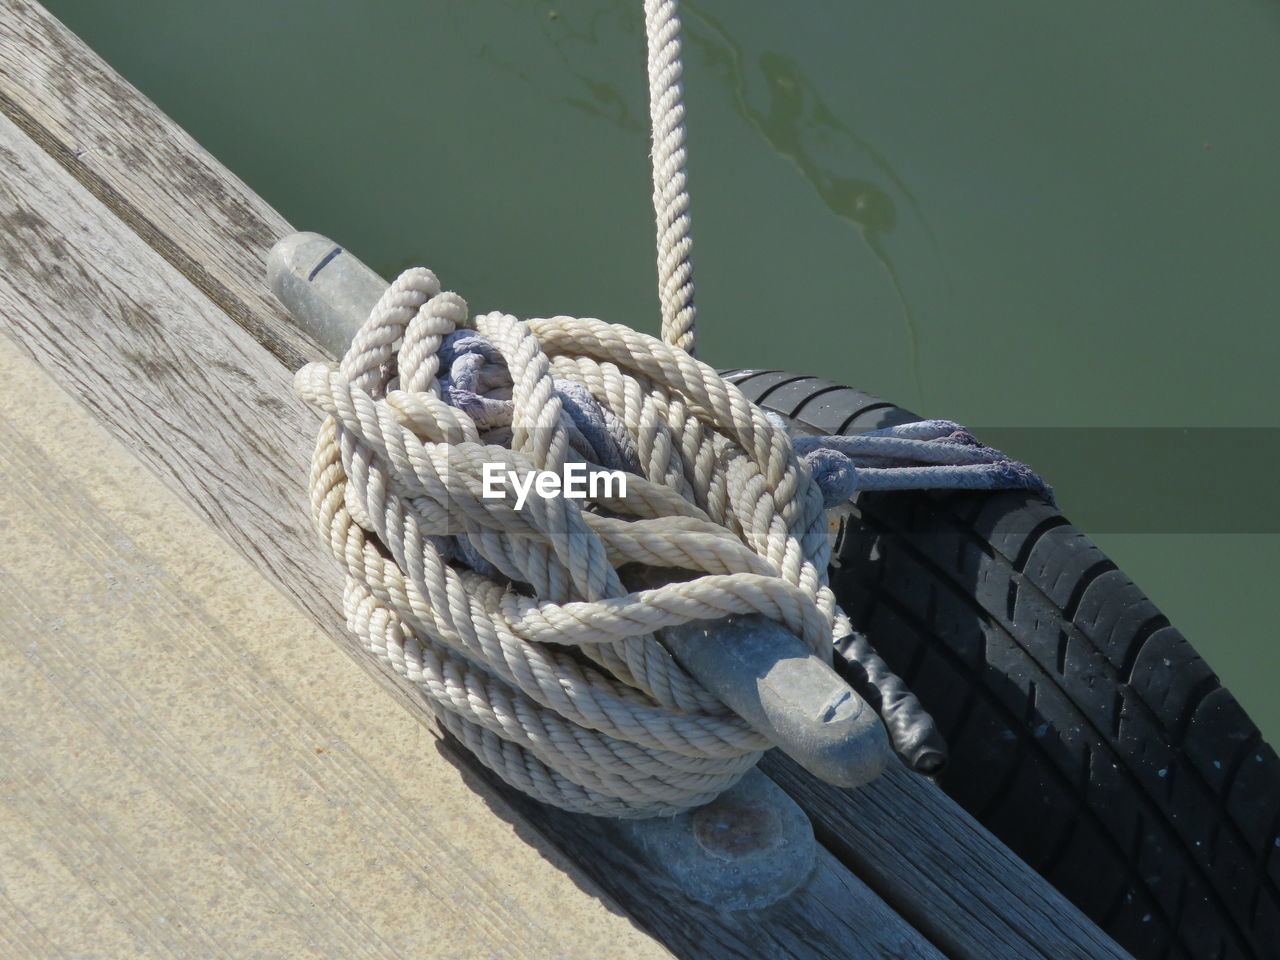 High Angle View Of Rope Tied On Bollard At Pier By River During Sunny Day